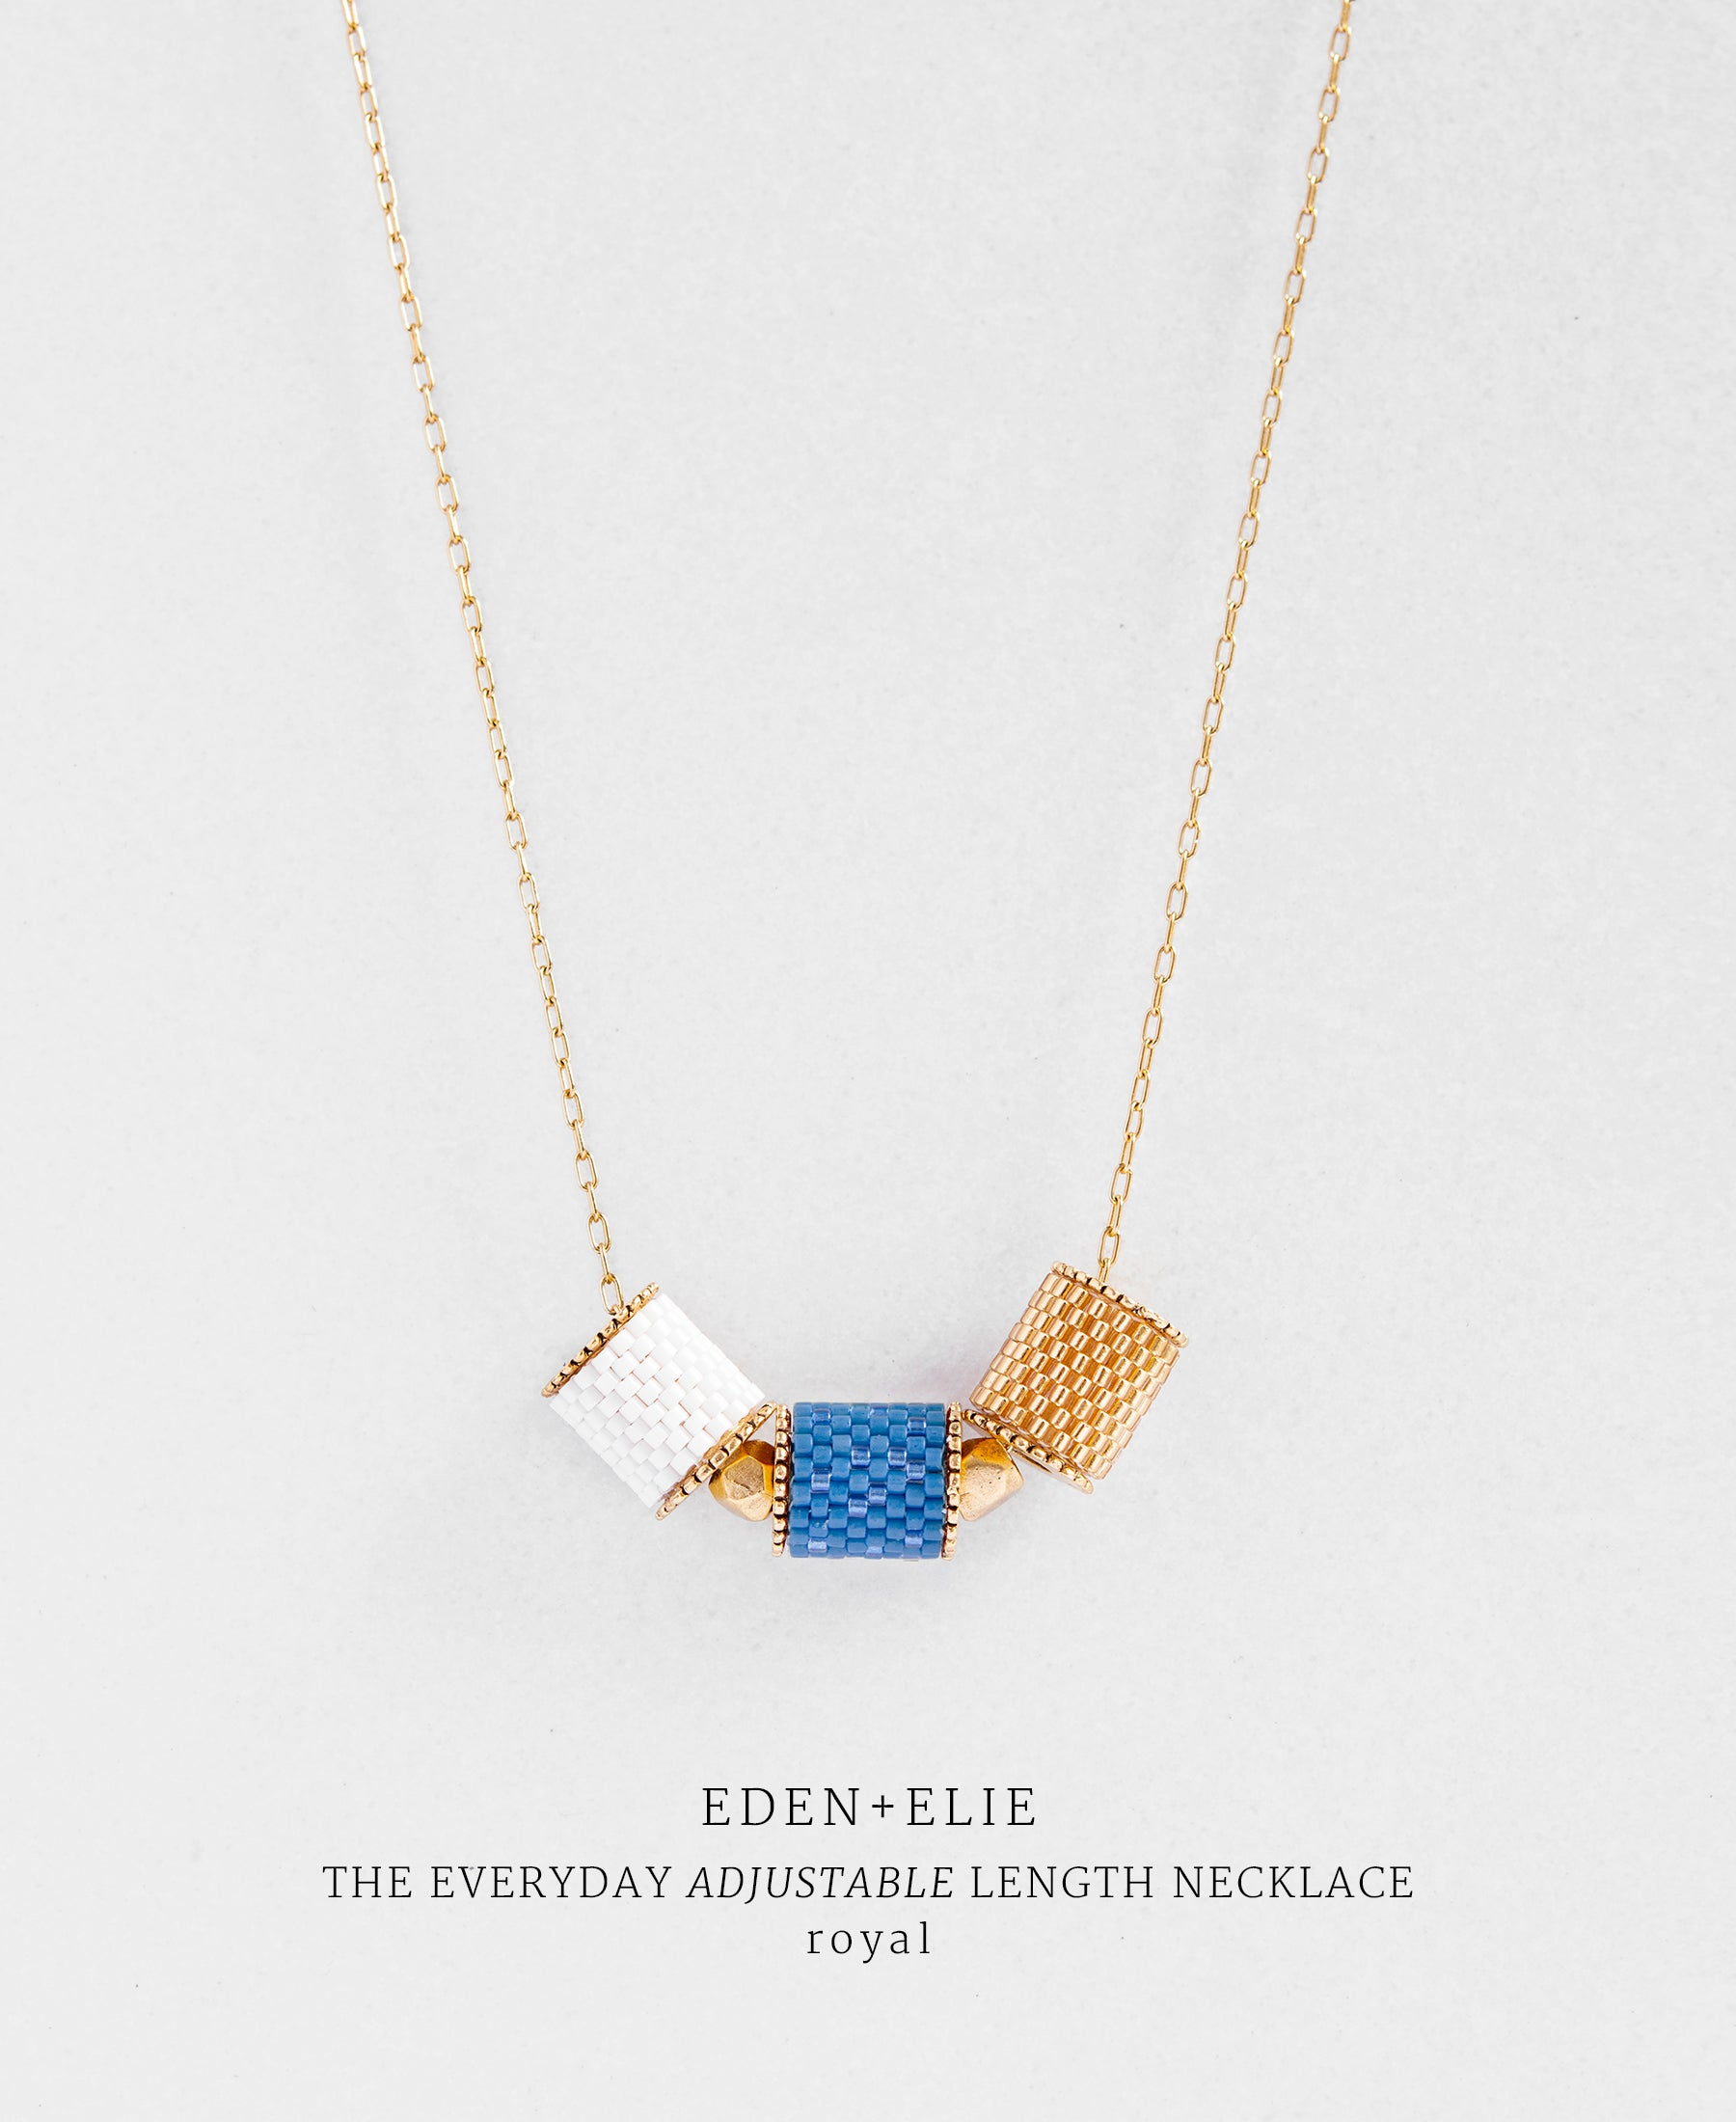 EDEN + ELIE Everyday adjustable length necklace - royal blue